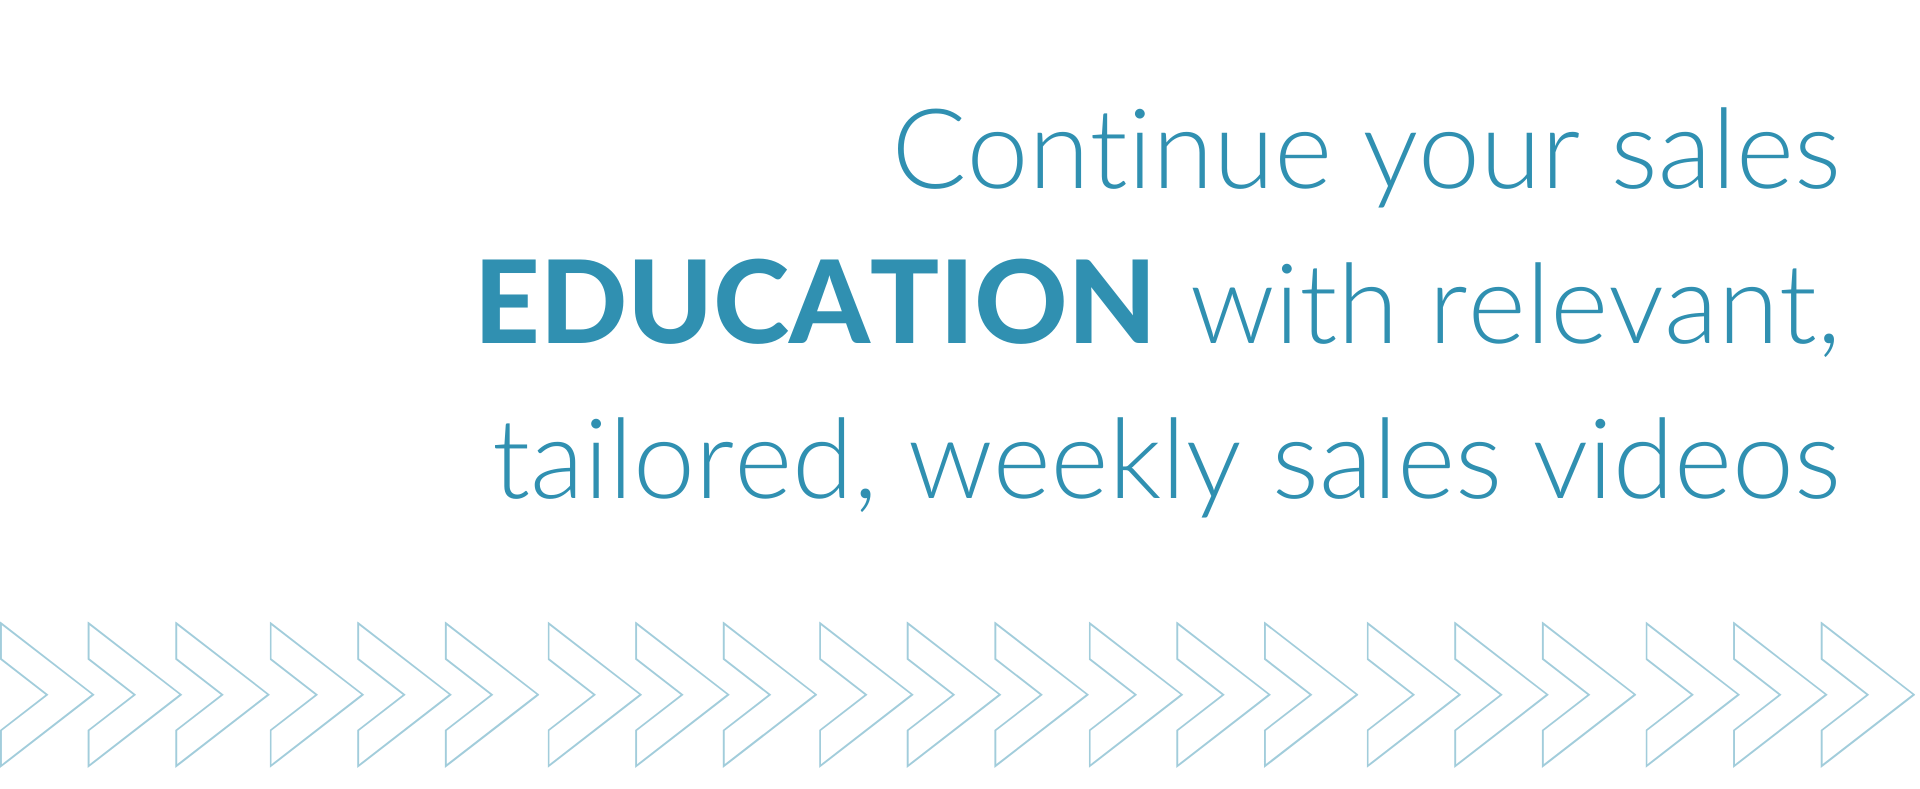 Continue your sales education with relevant, tailored, weekly sales videos